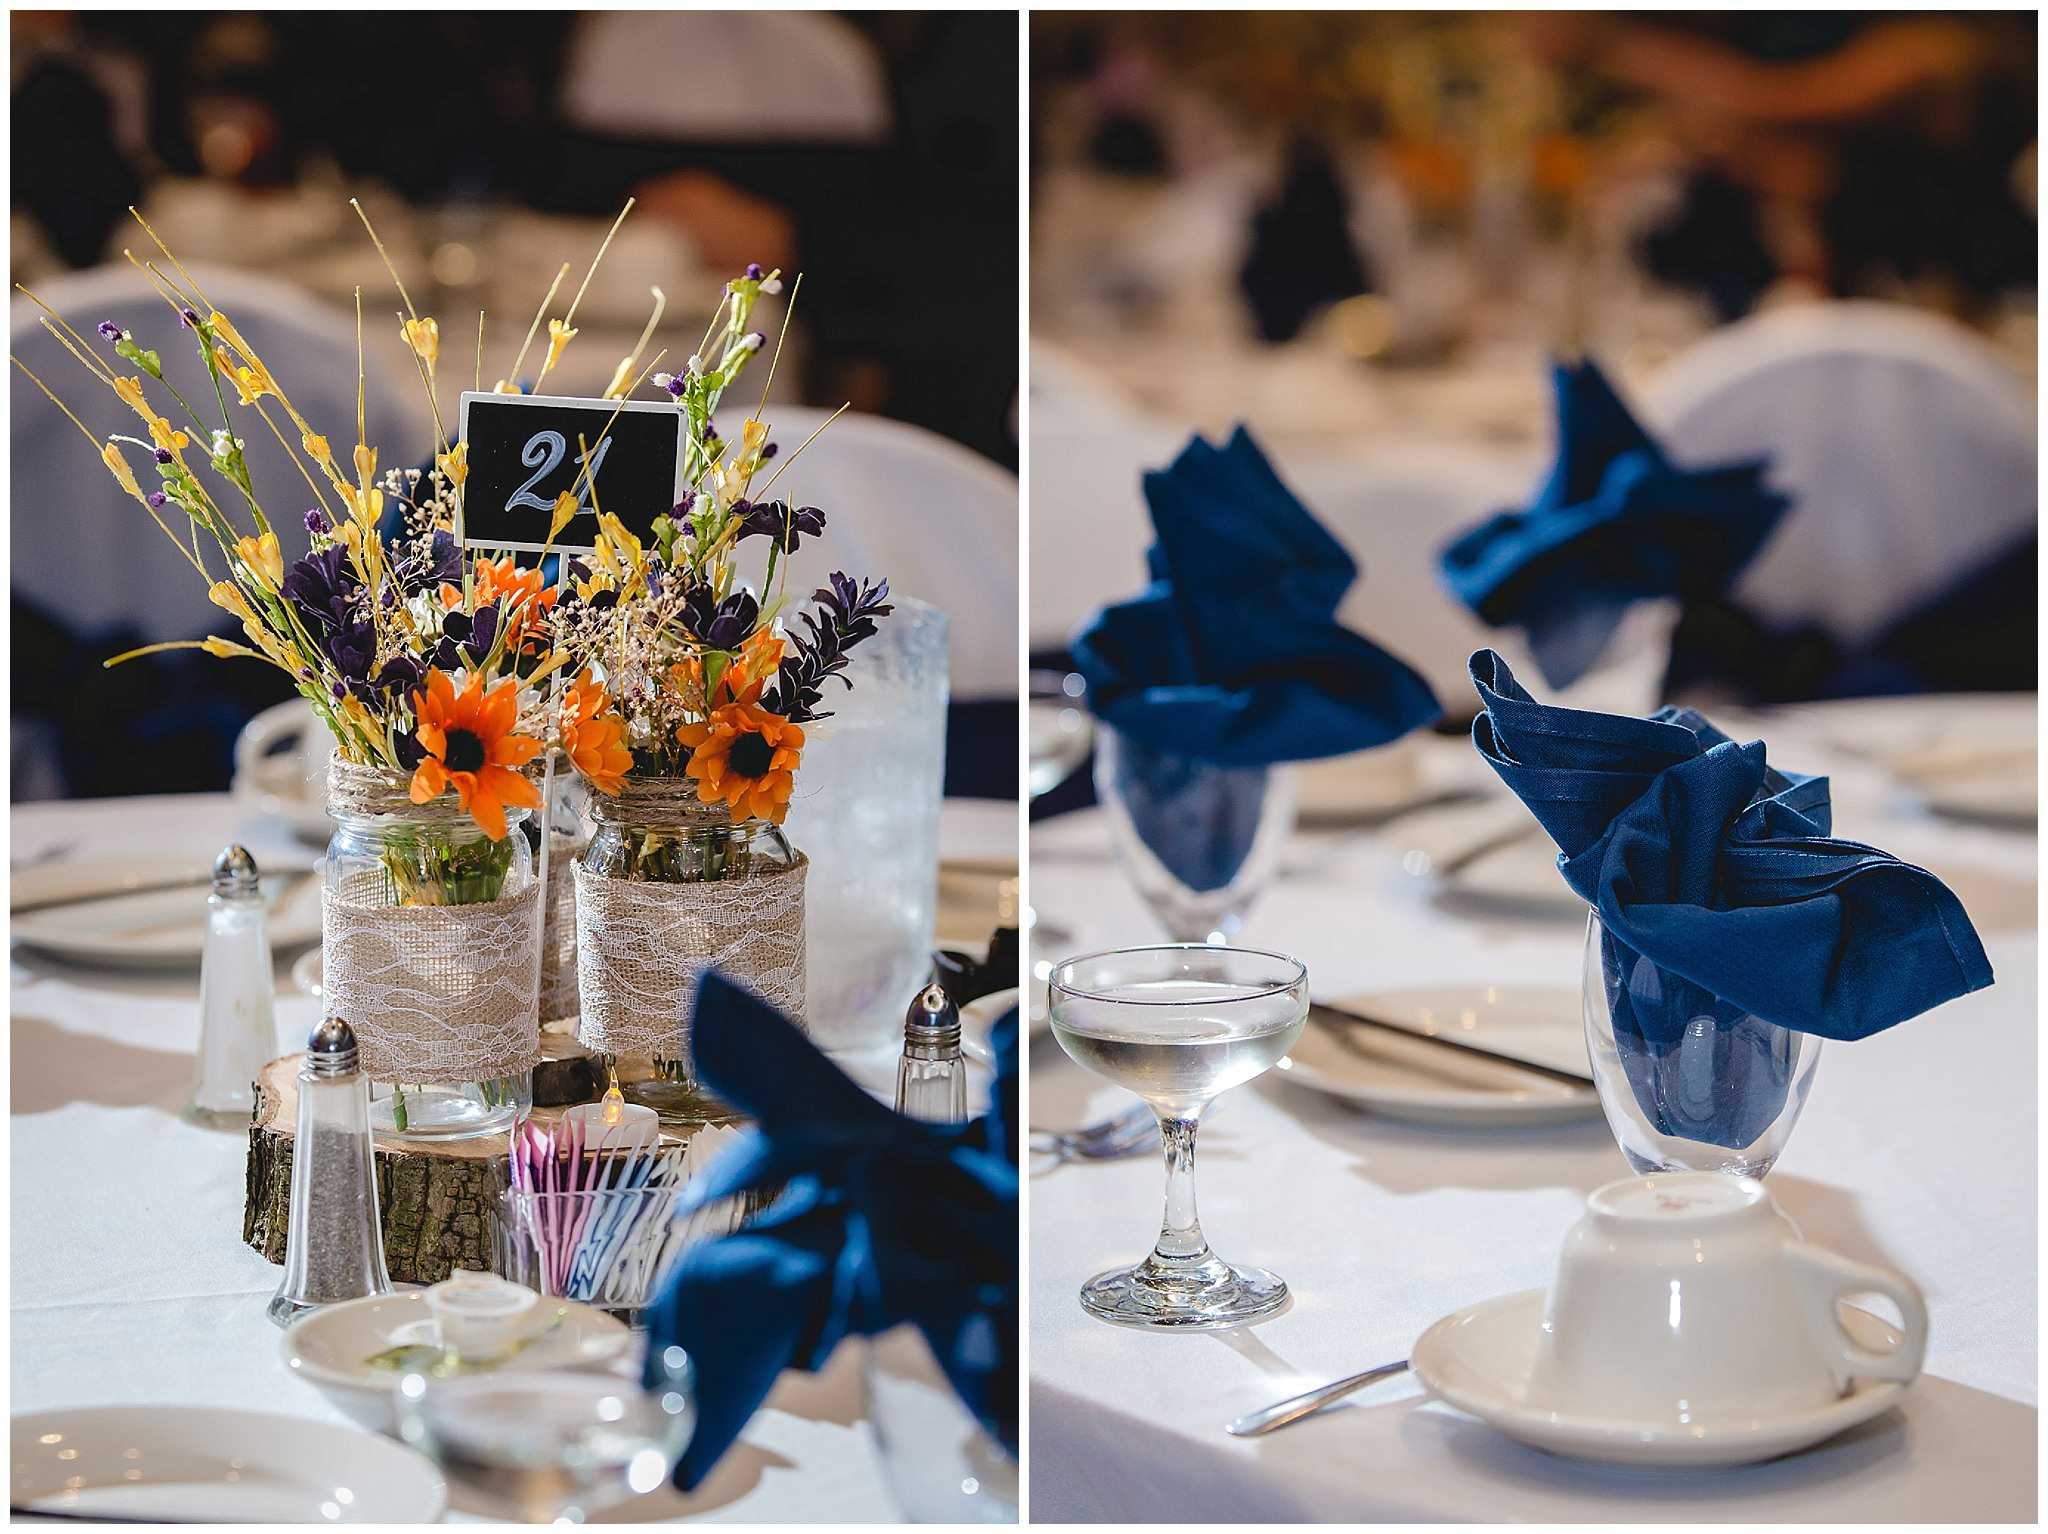 Fall floral centerpieces in mason jars at a Fez wedding reception